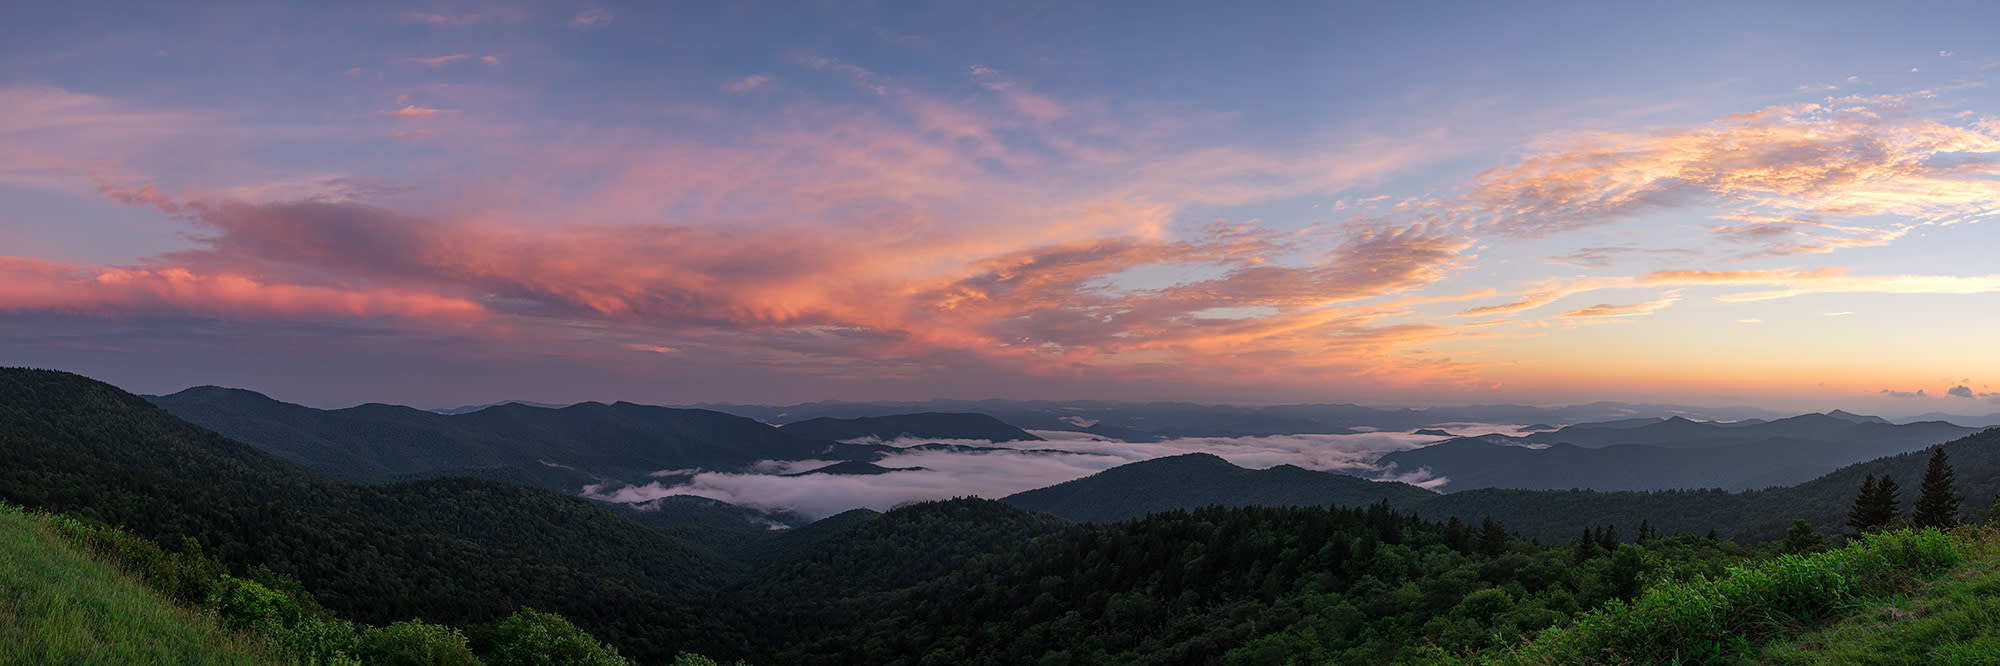 <div class='title'>           Cowee Mountain Summer Sunset Pano         </div>